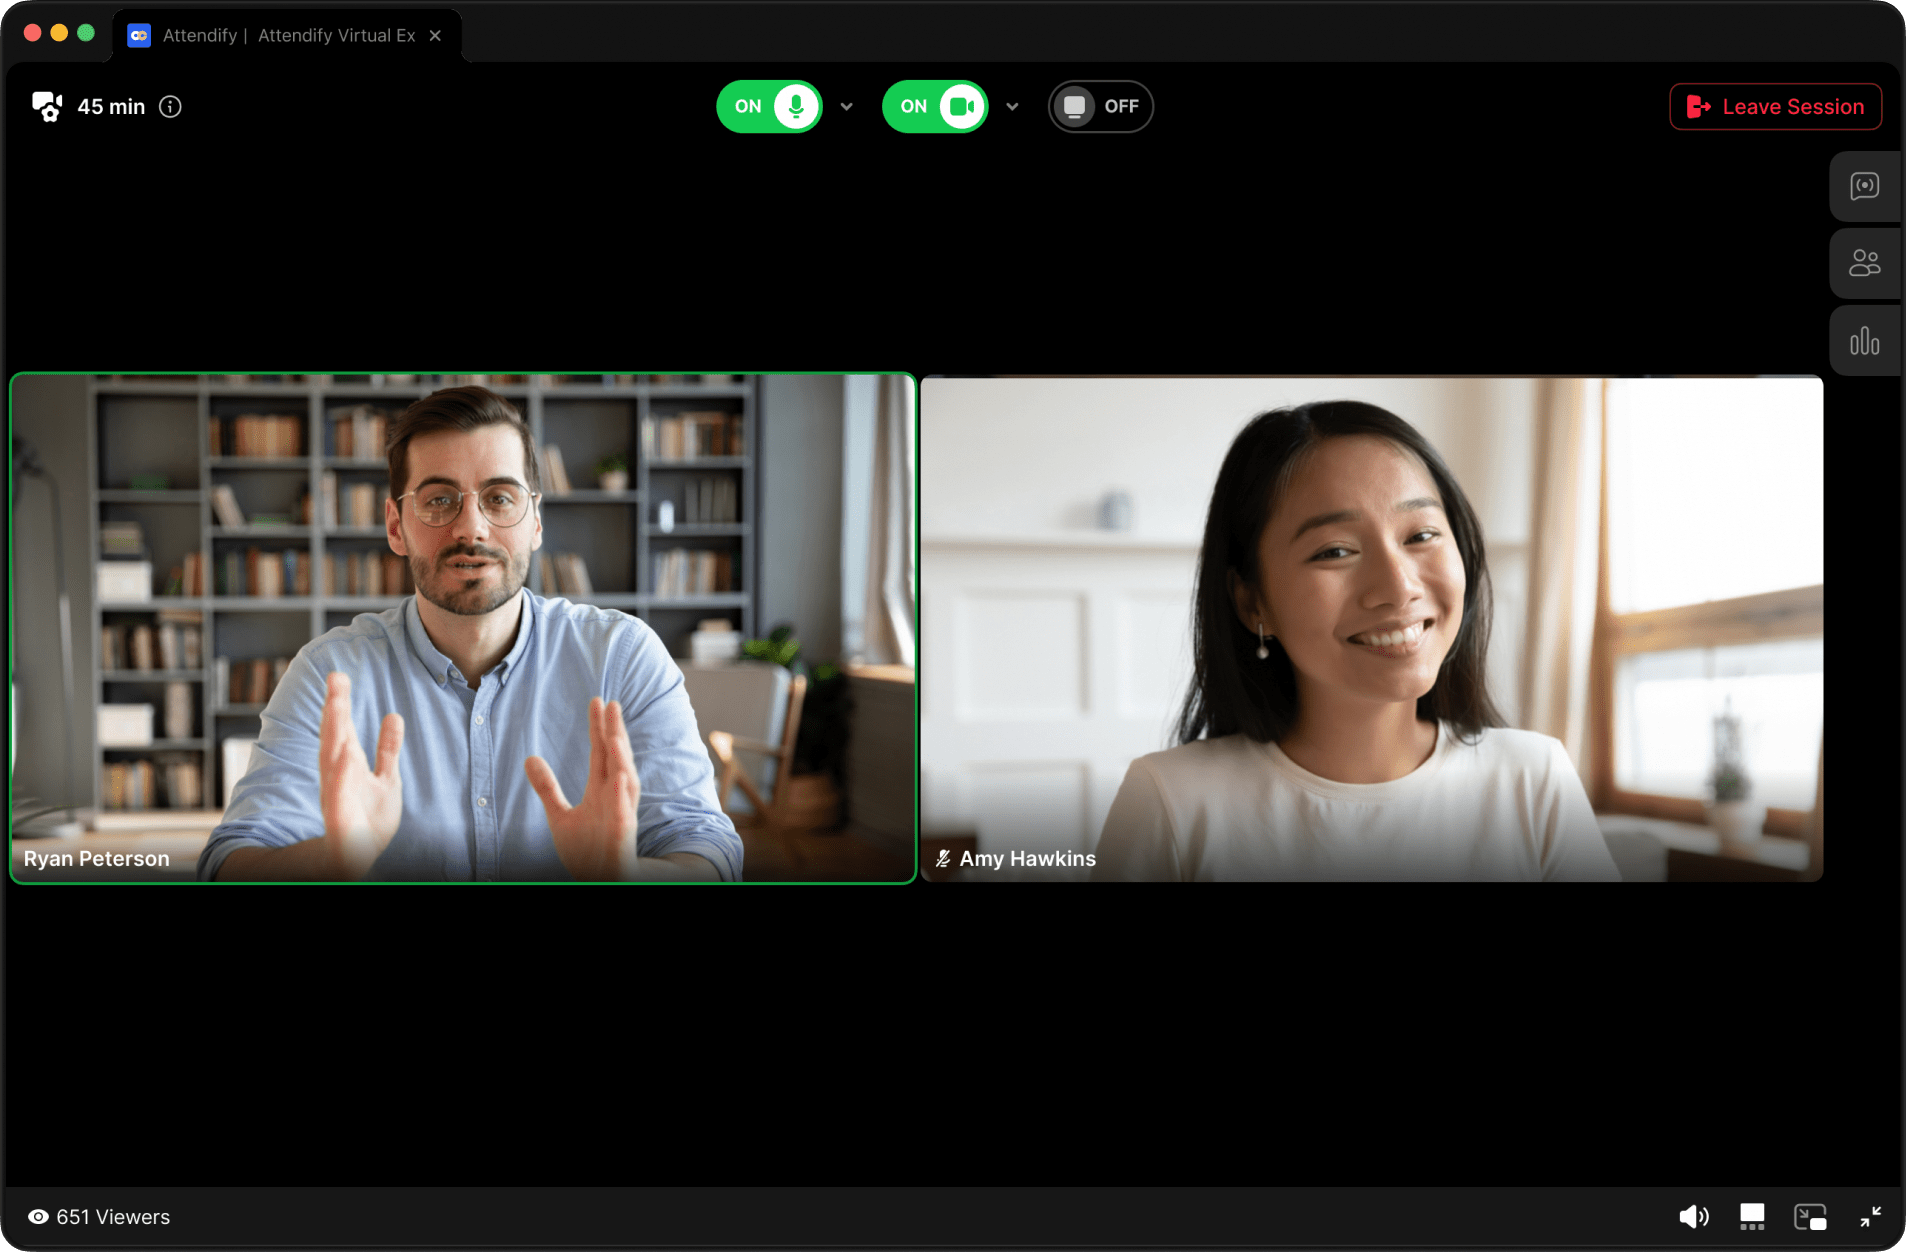 Attendify's native live steaming and streaming options for virtual events